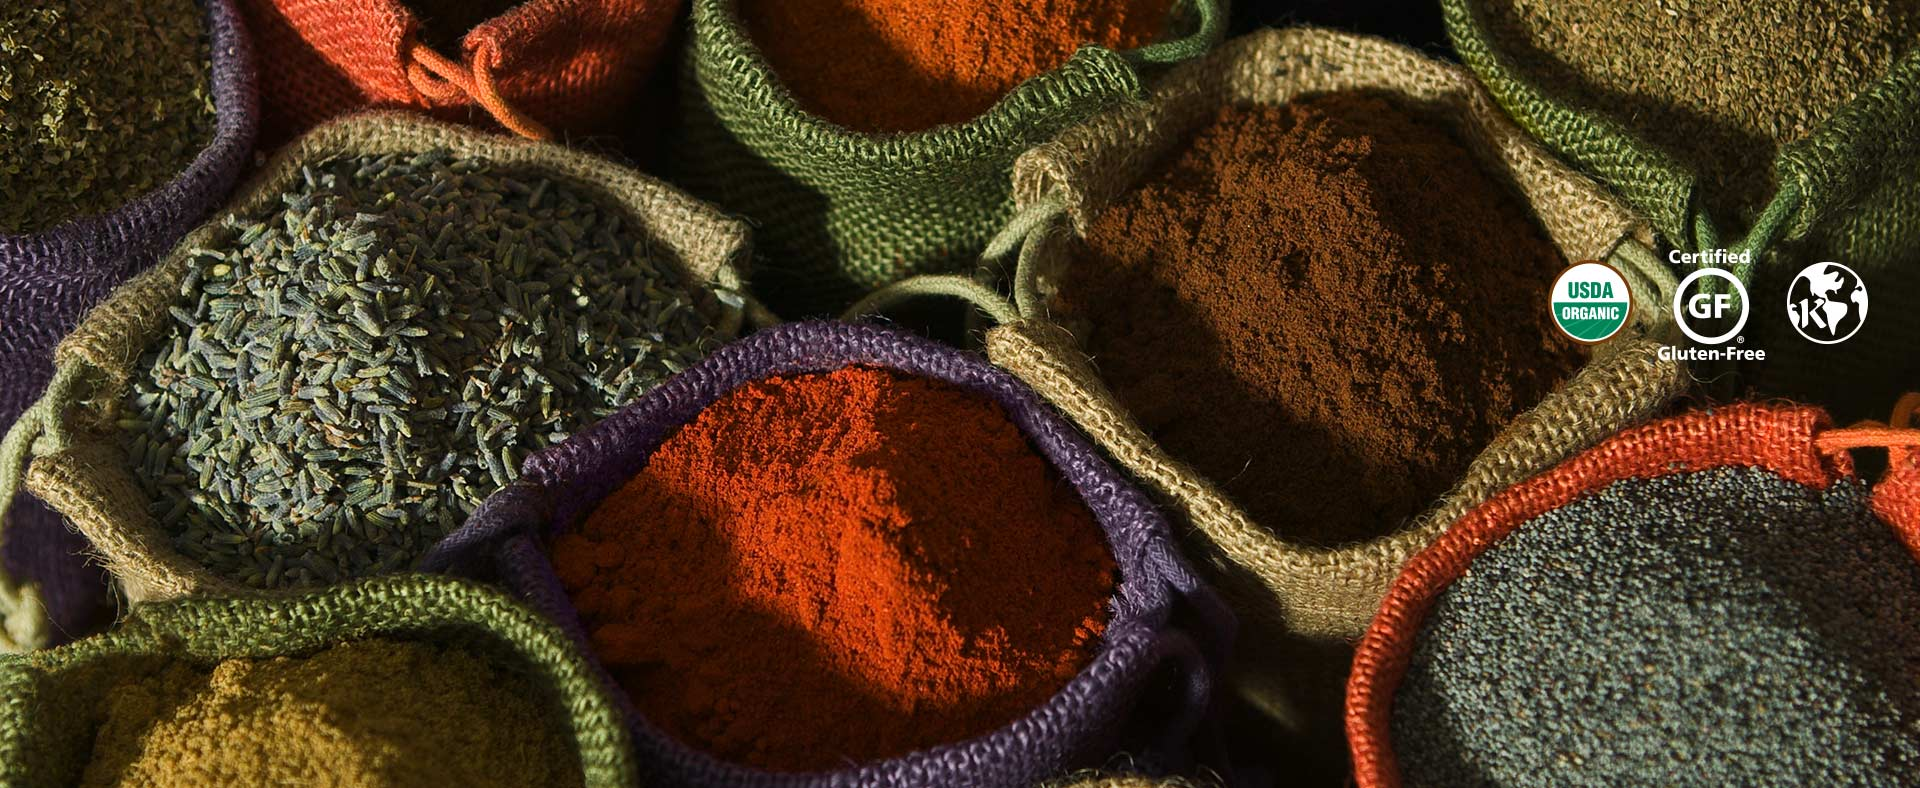 Smith & Truslow fresh organic spices in burlap bags